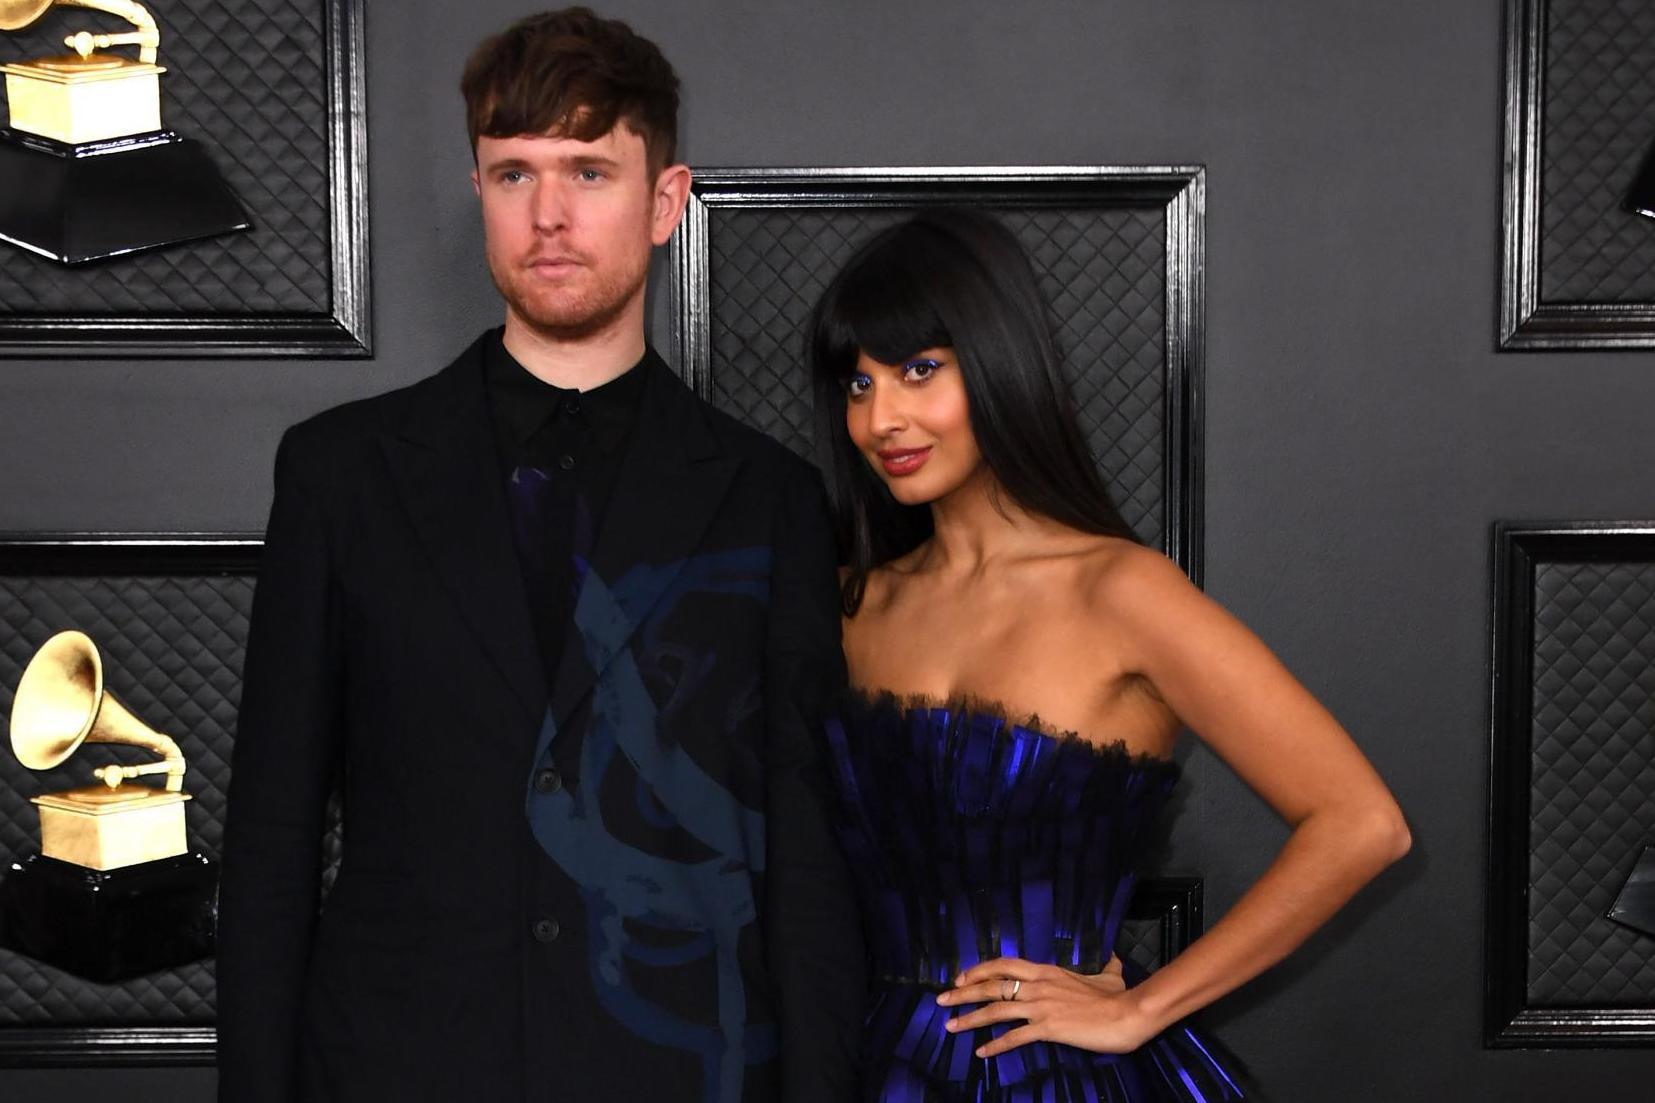 James Blake defends Jameela Jamil after she's accused of faking illnesses